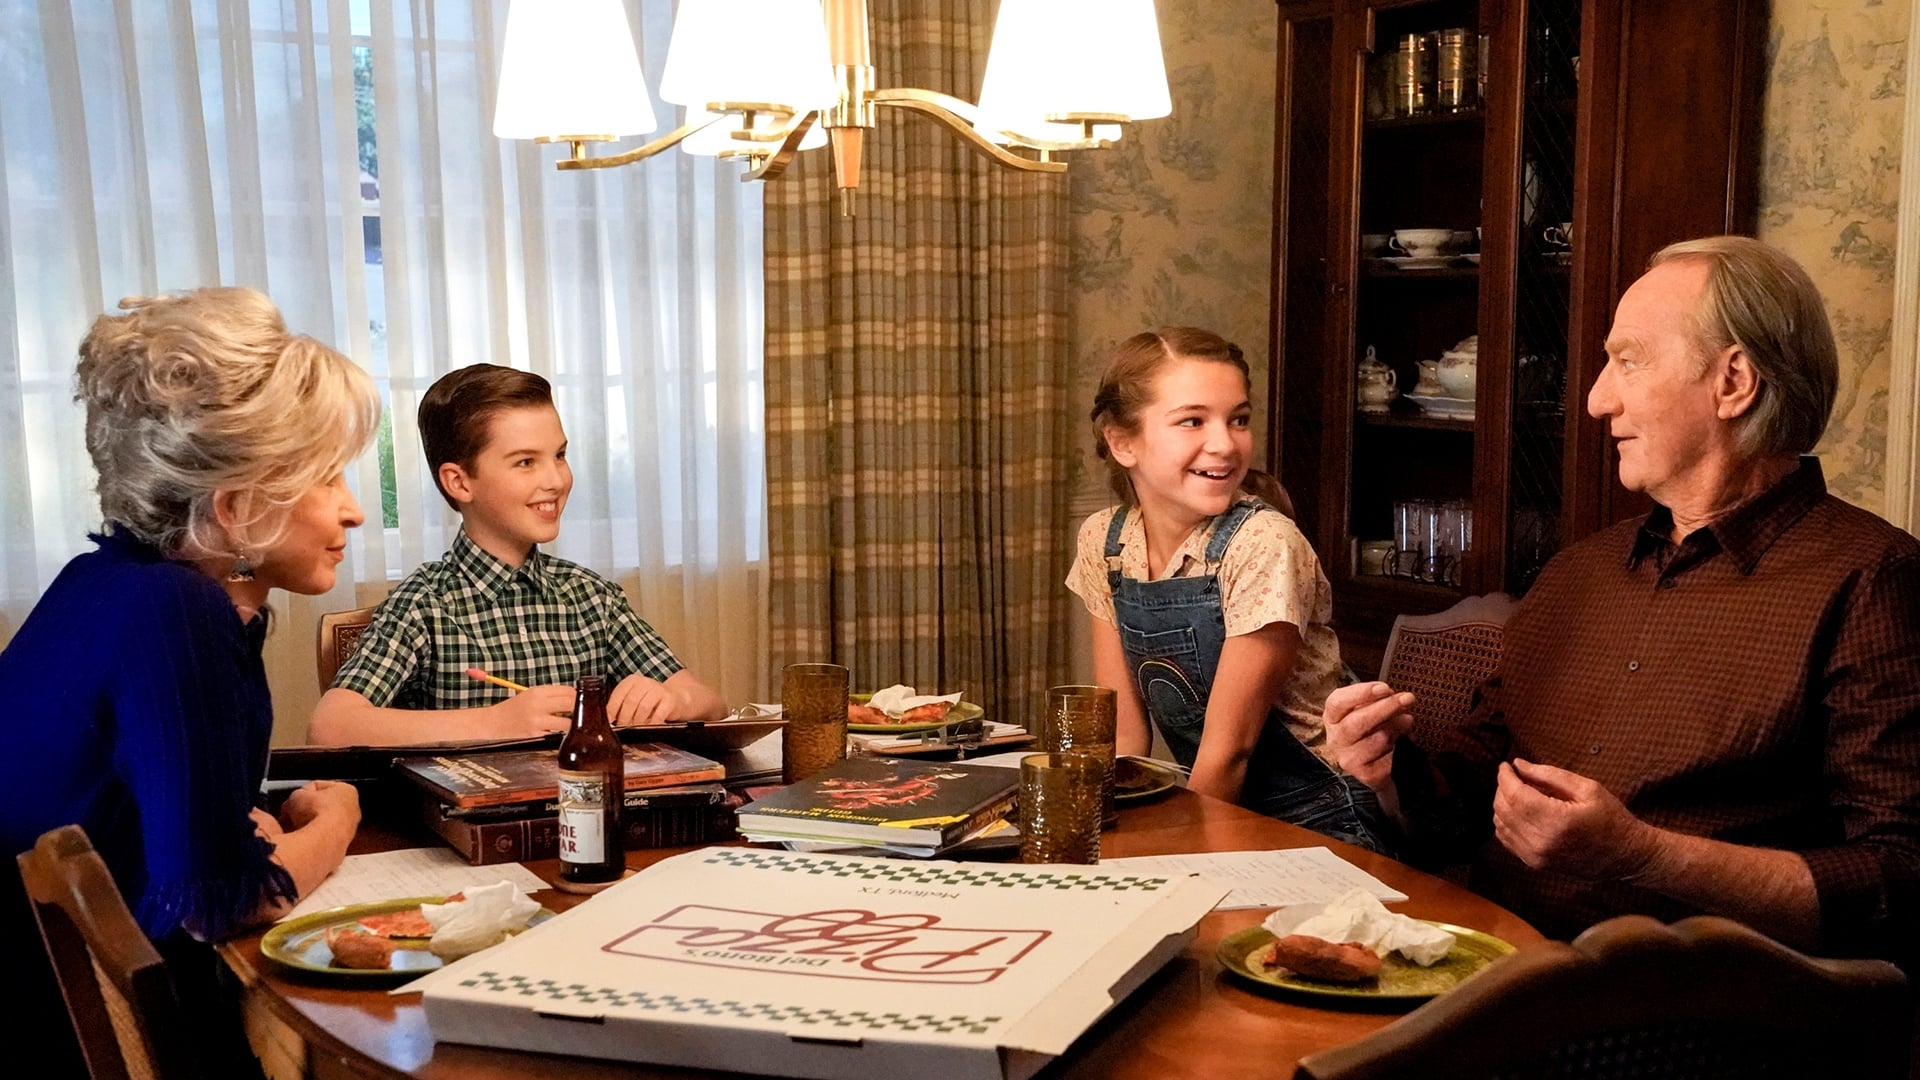 Young Sheldon - Season 4 Episode 5 : A Musty Crypt and a Stick to Pee On